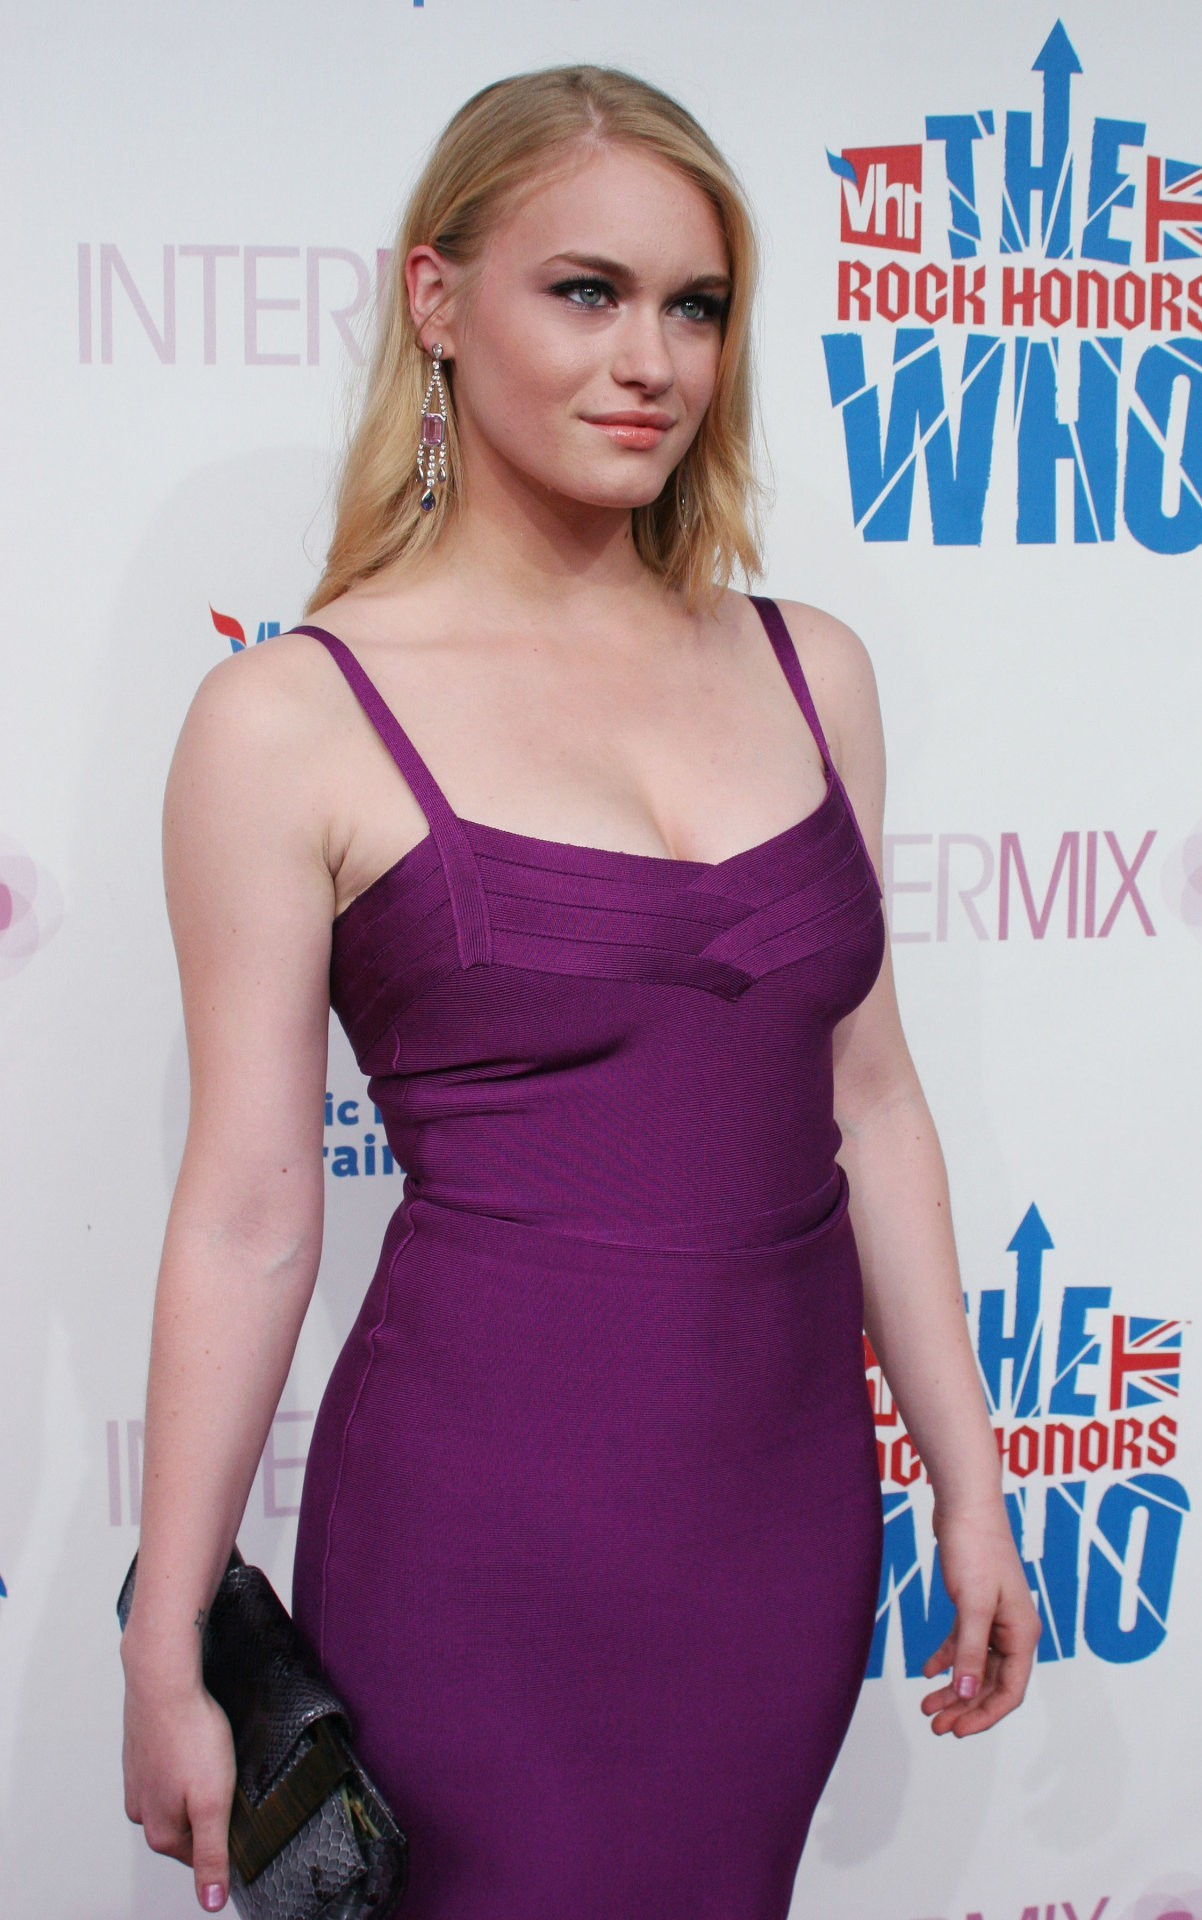 Leven rambin ass naked (49 photo), Sexy Celebrites pics